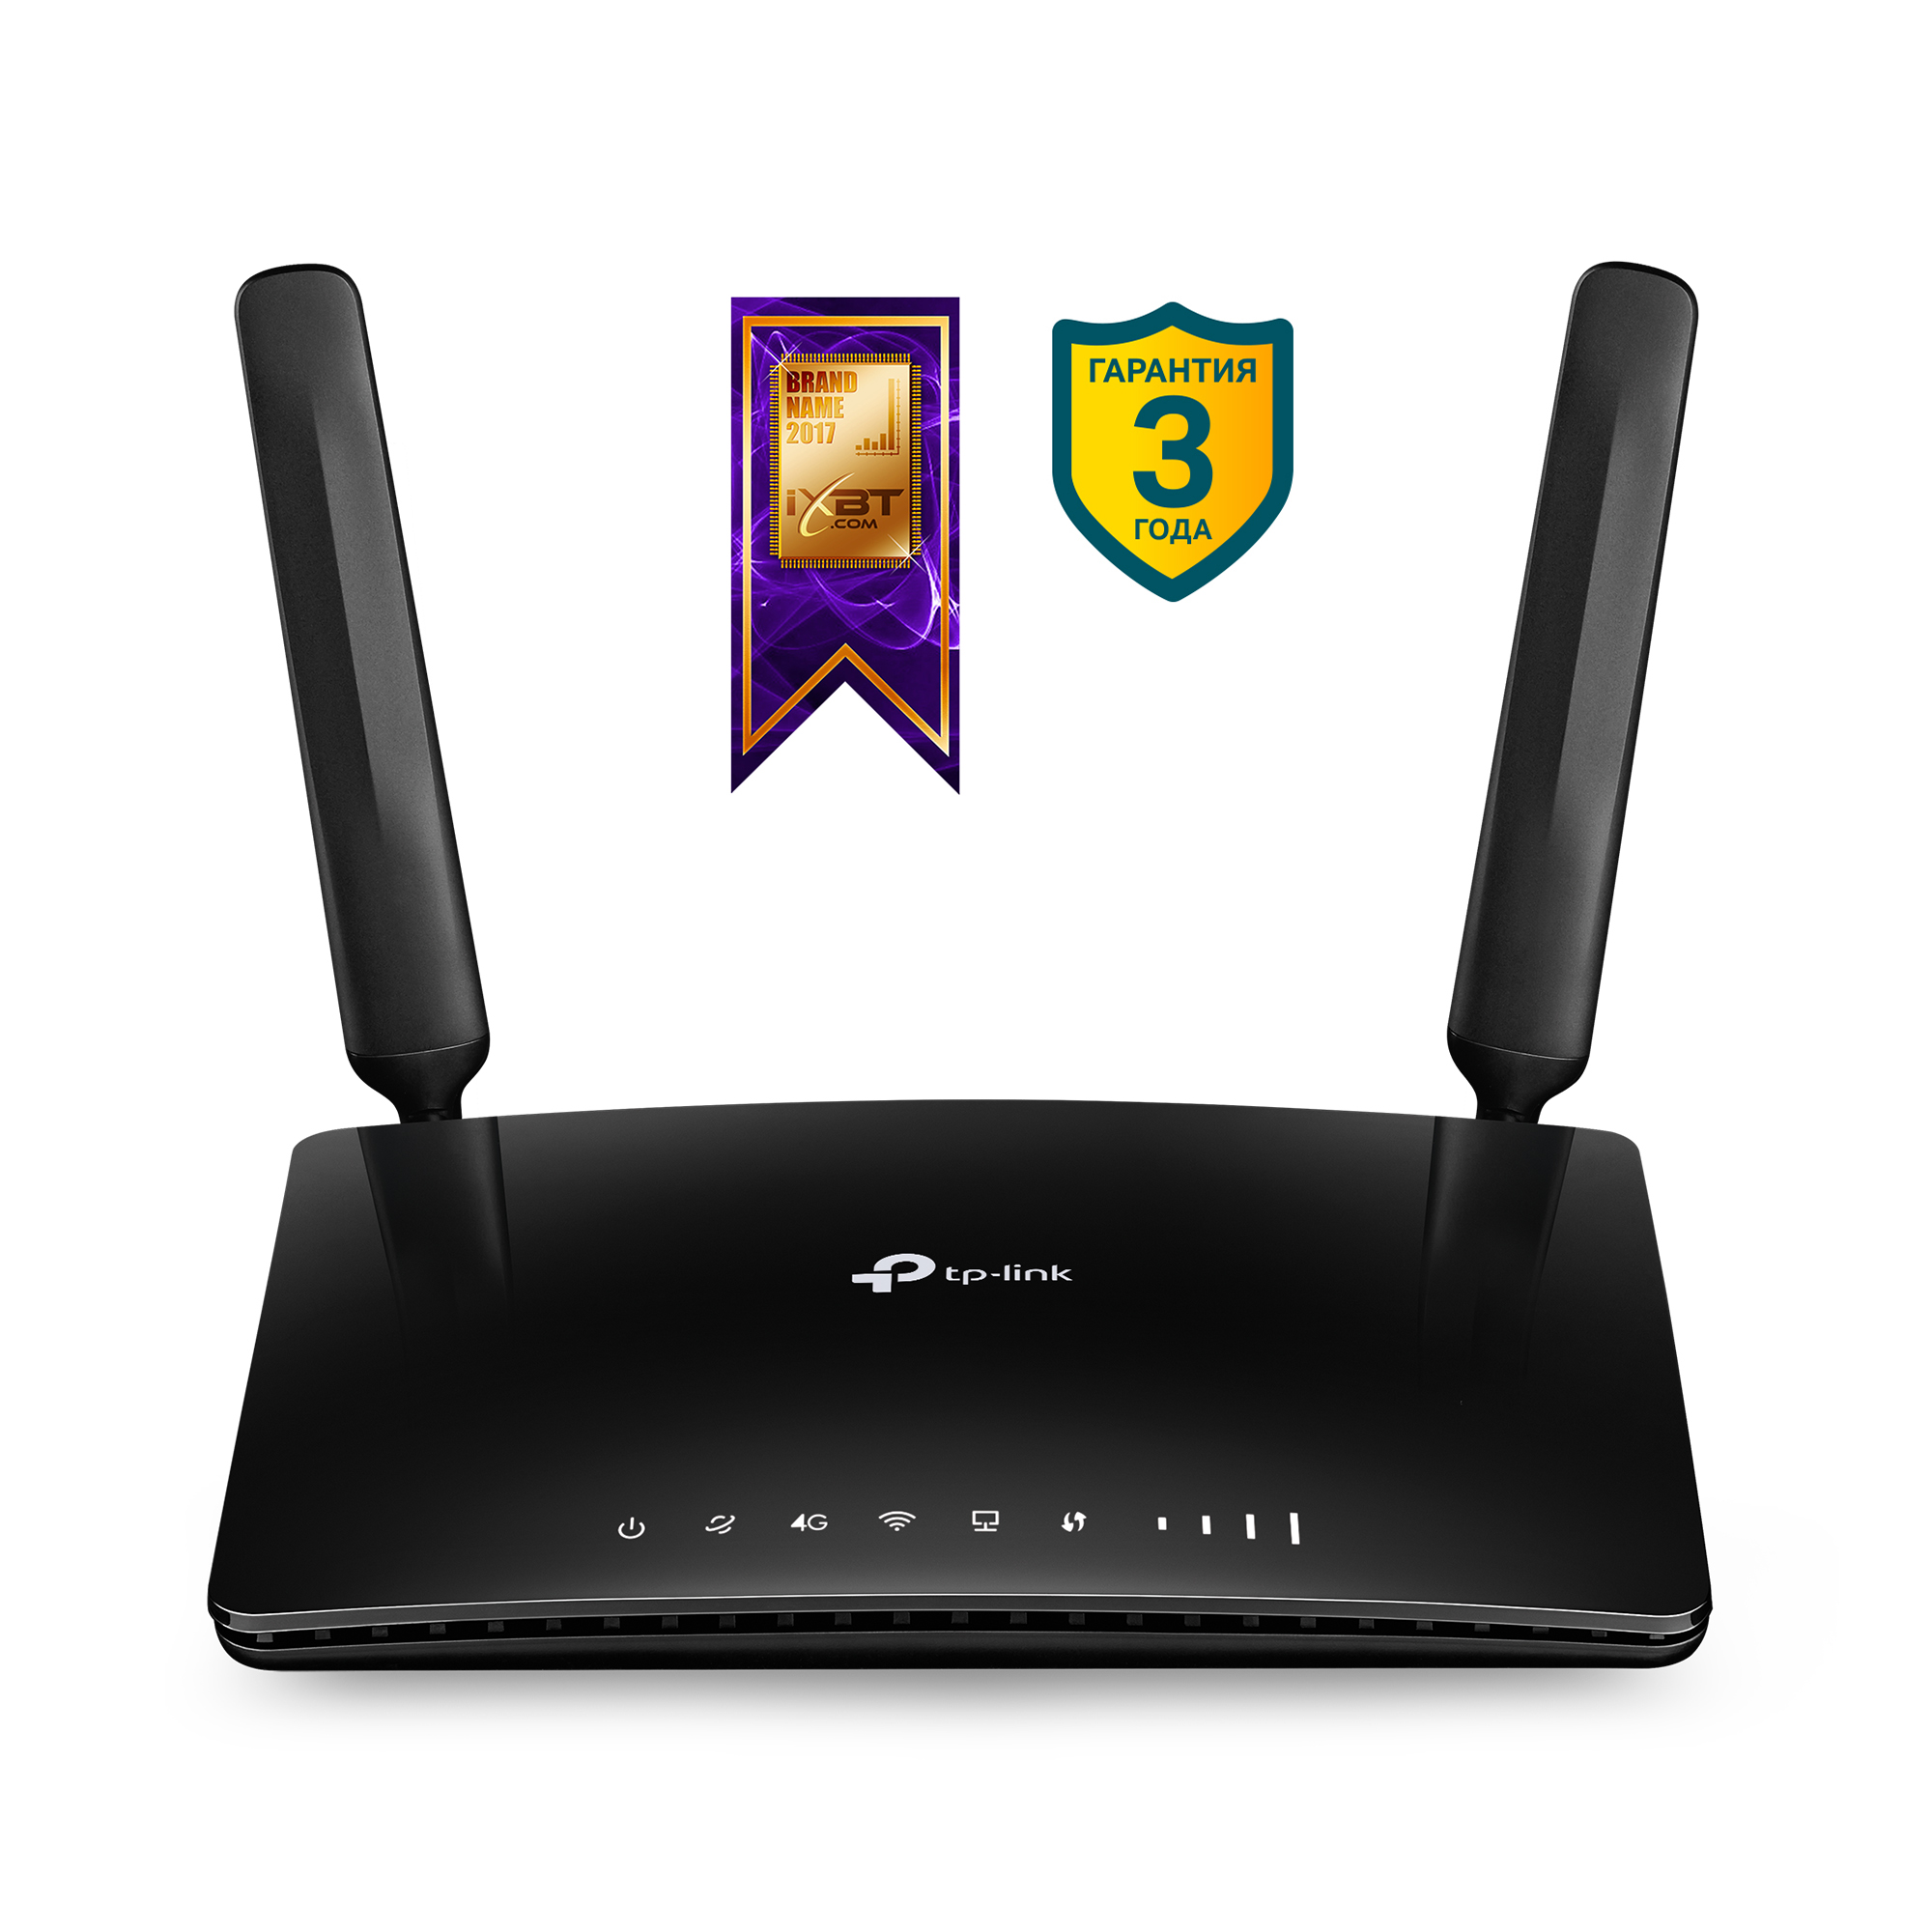 Маршрутизатор TP-LINK Archer MR200 AC750 Беспроводной двухдиапазонный 4G LTE-маршрутизатор unlocked netger 4g 150mbps sierra wireless router aircard 770s 4g lte mobile wifi hotspot dongle 4g pocket wifi